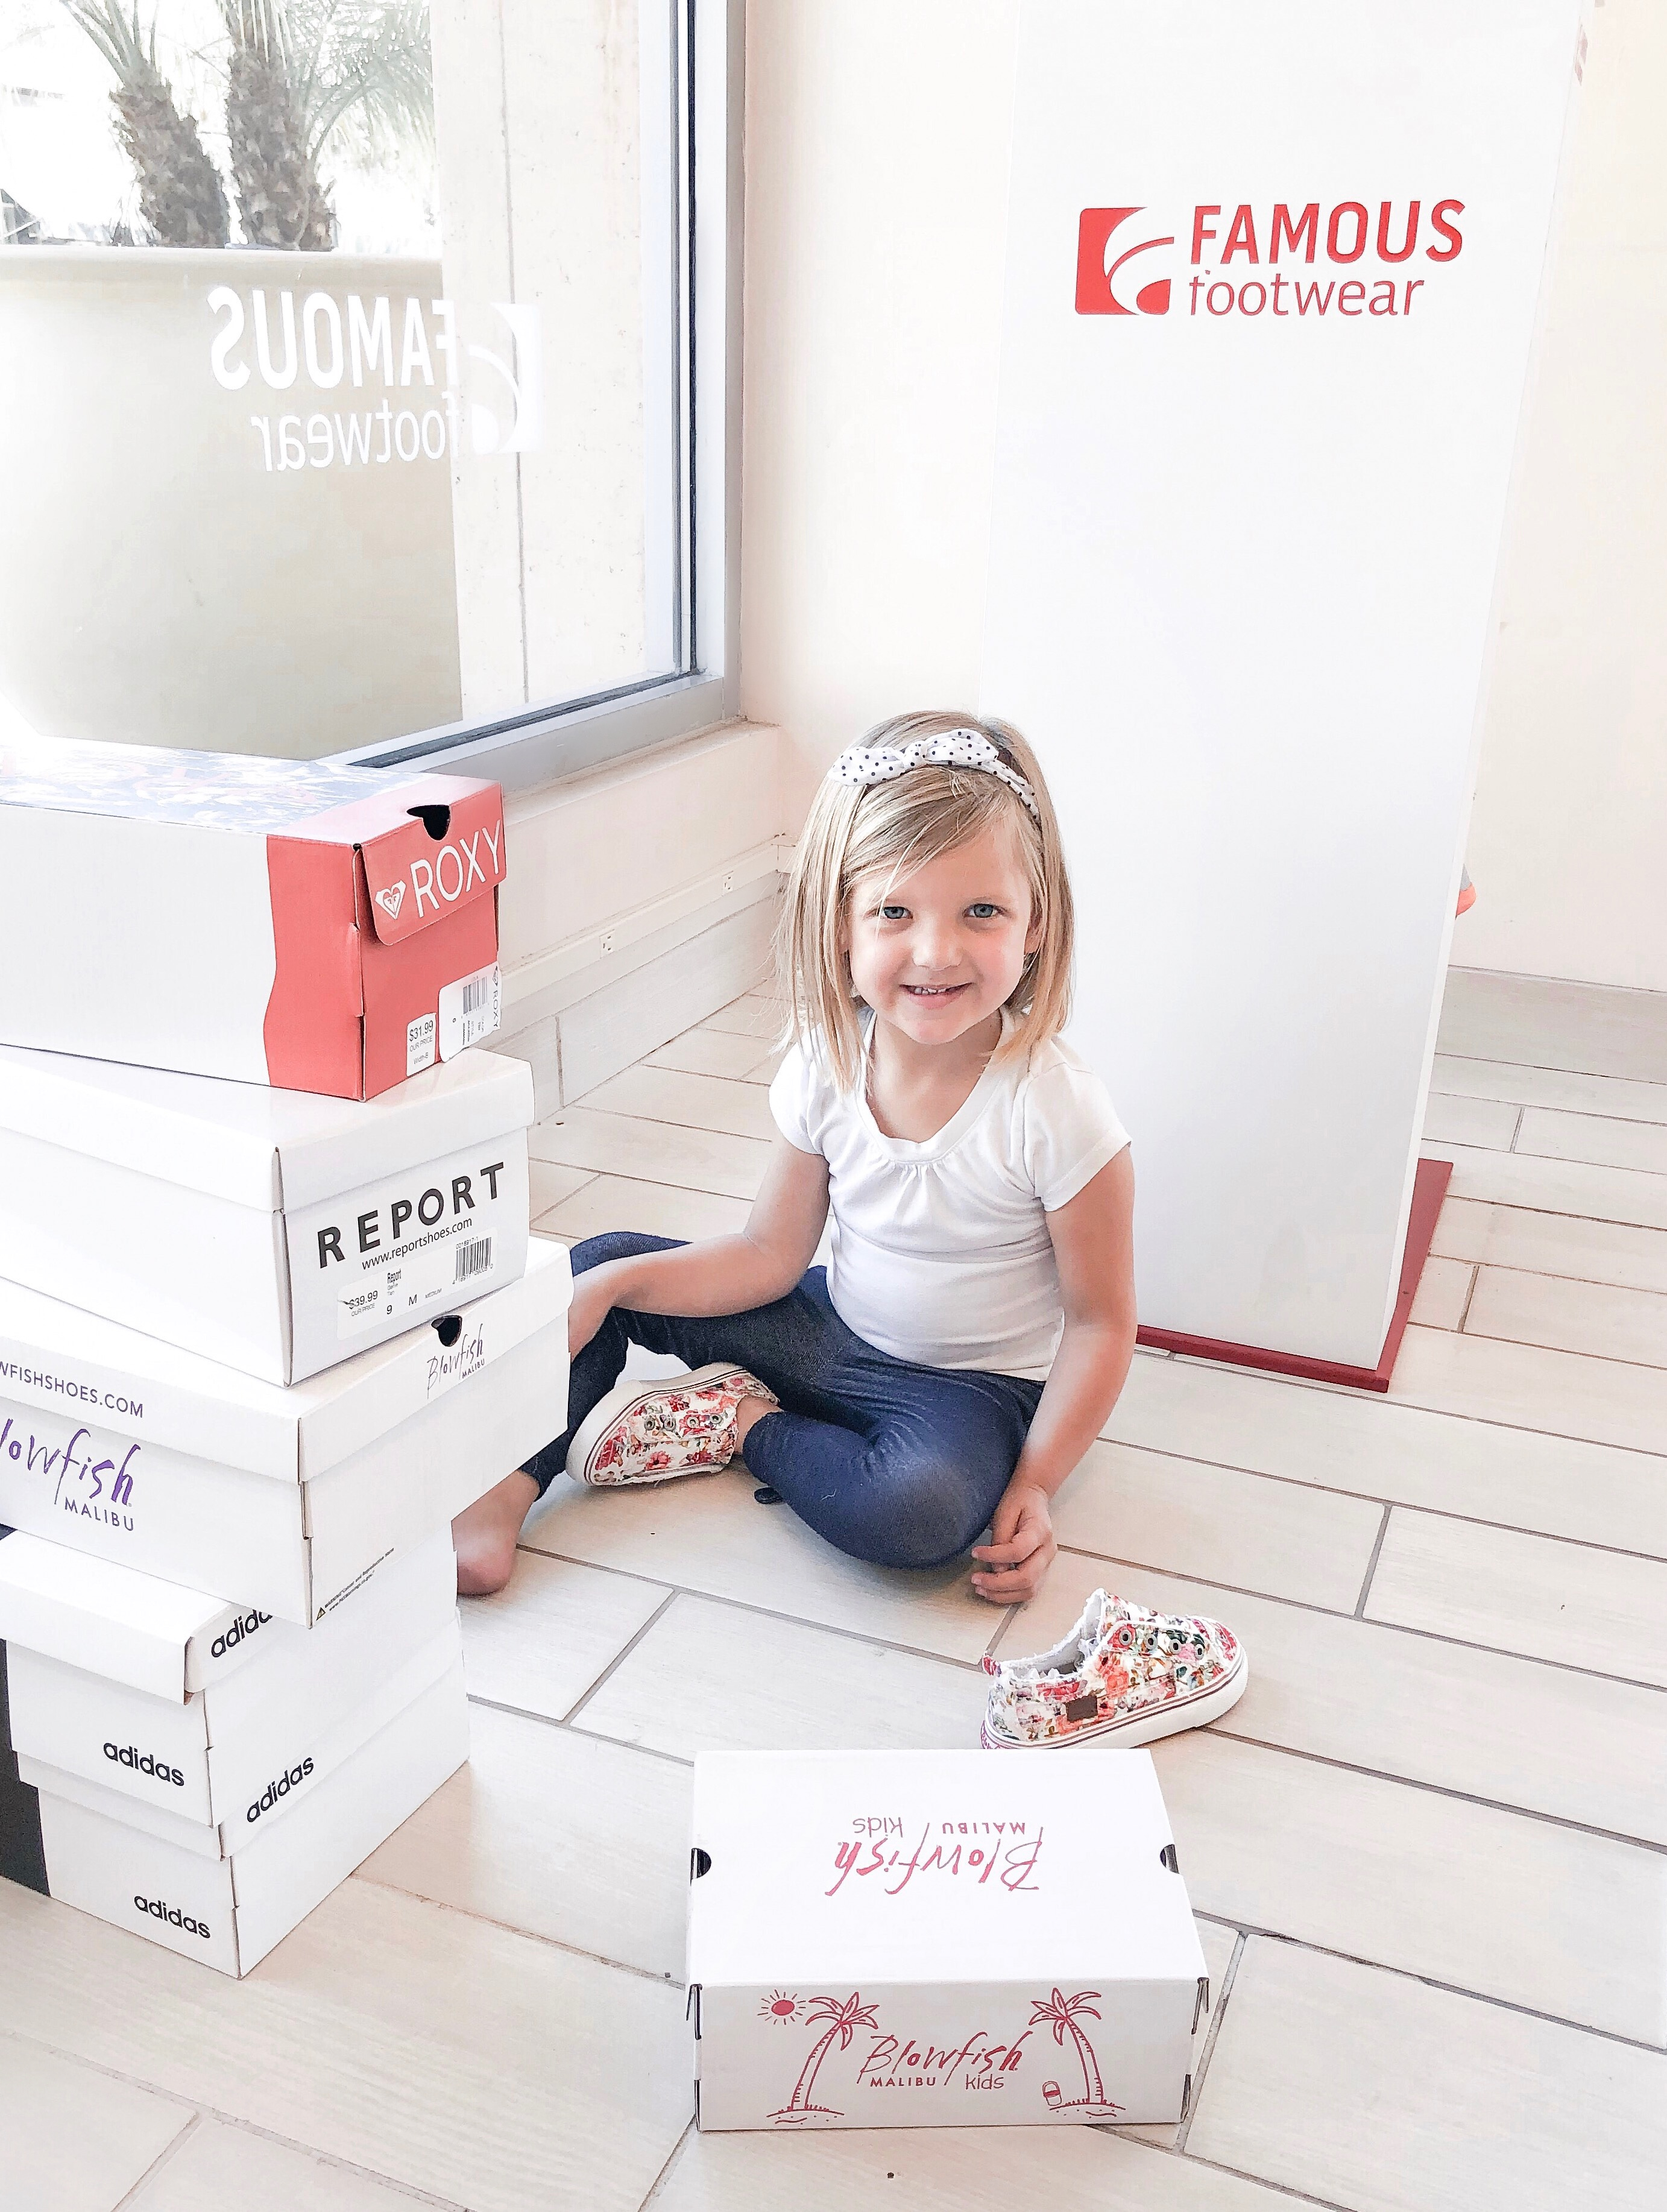 Back To School Shoes from Famous Footwear by popular San Diego fashion blog, Domestic Blonde: image of a young girl sitting on the floor at Famous Footwear surrounded by piles of stacked shoes boxes.